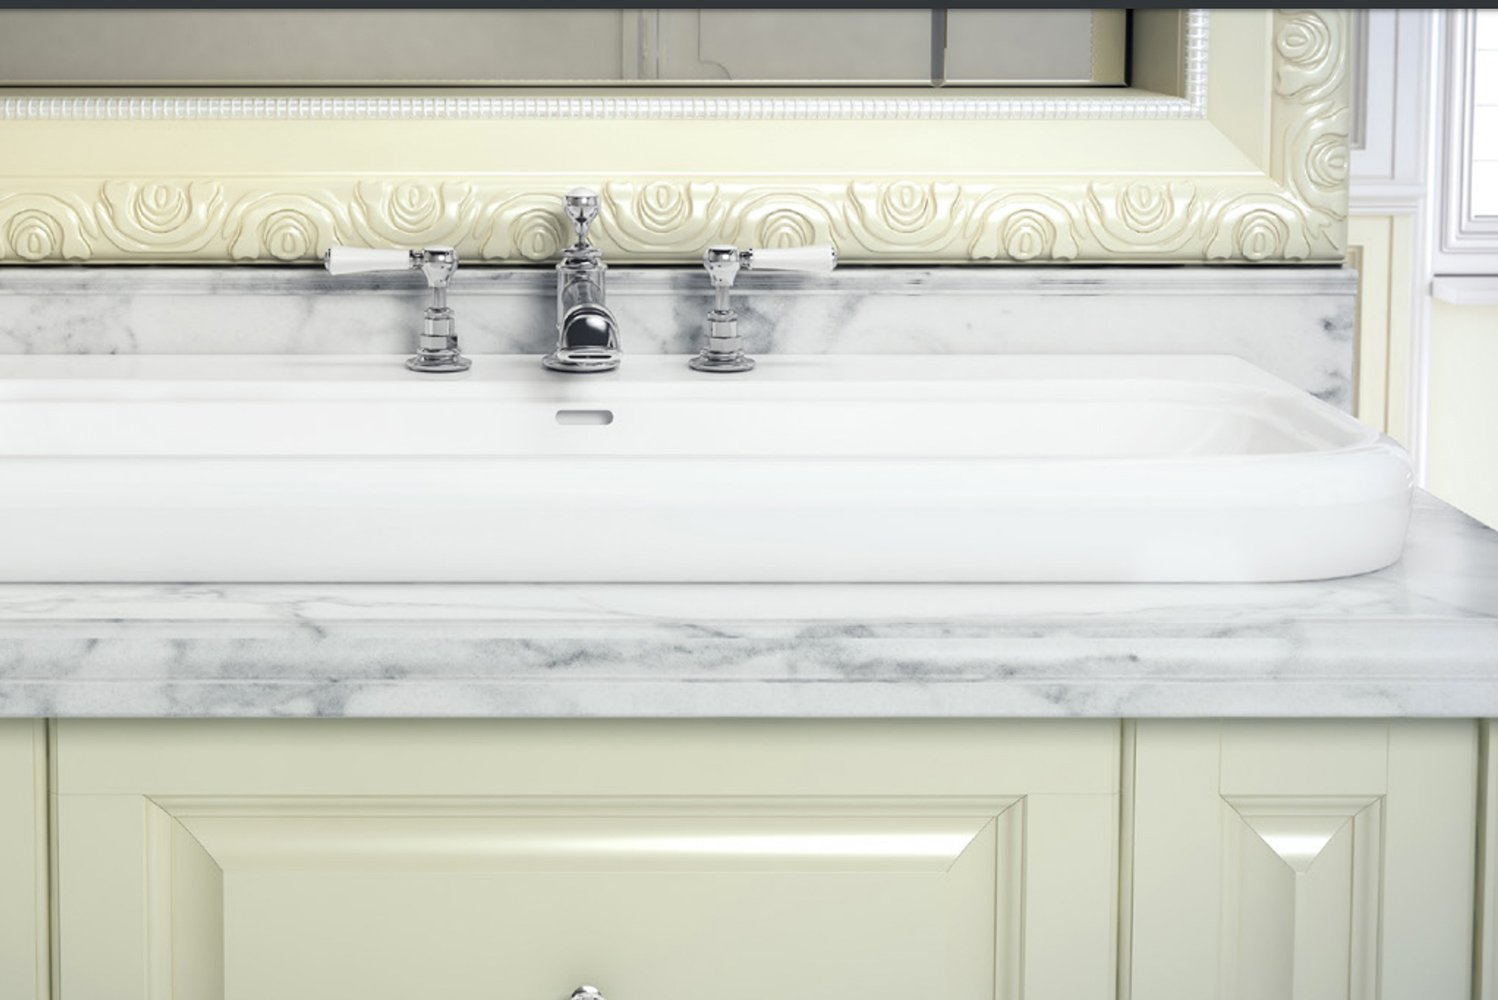 The basins may be countertop mounted or semi-recessed, and deck-mounted with brassware for easy cleaning.